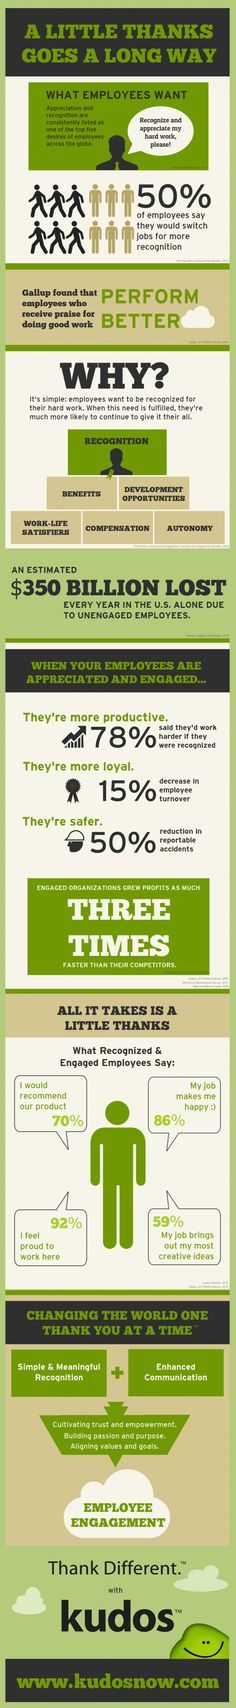 Employee Appreciation: A Little Thanks Goes a Long Way #infographic